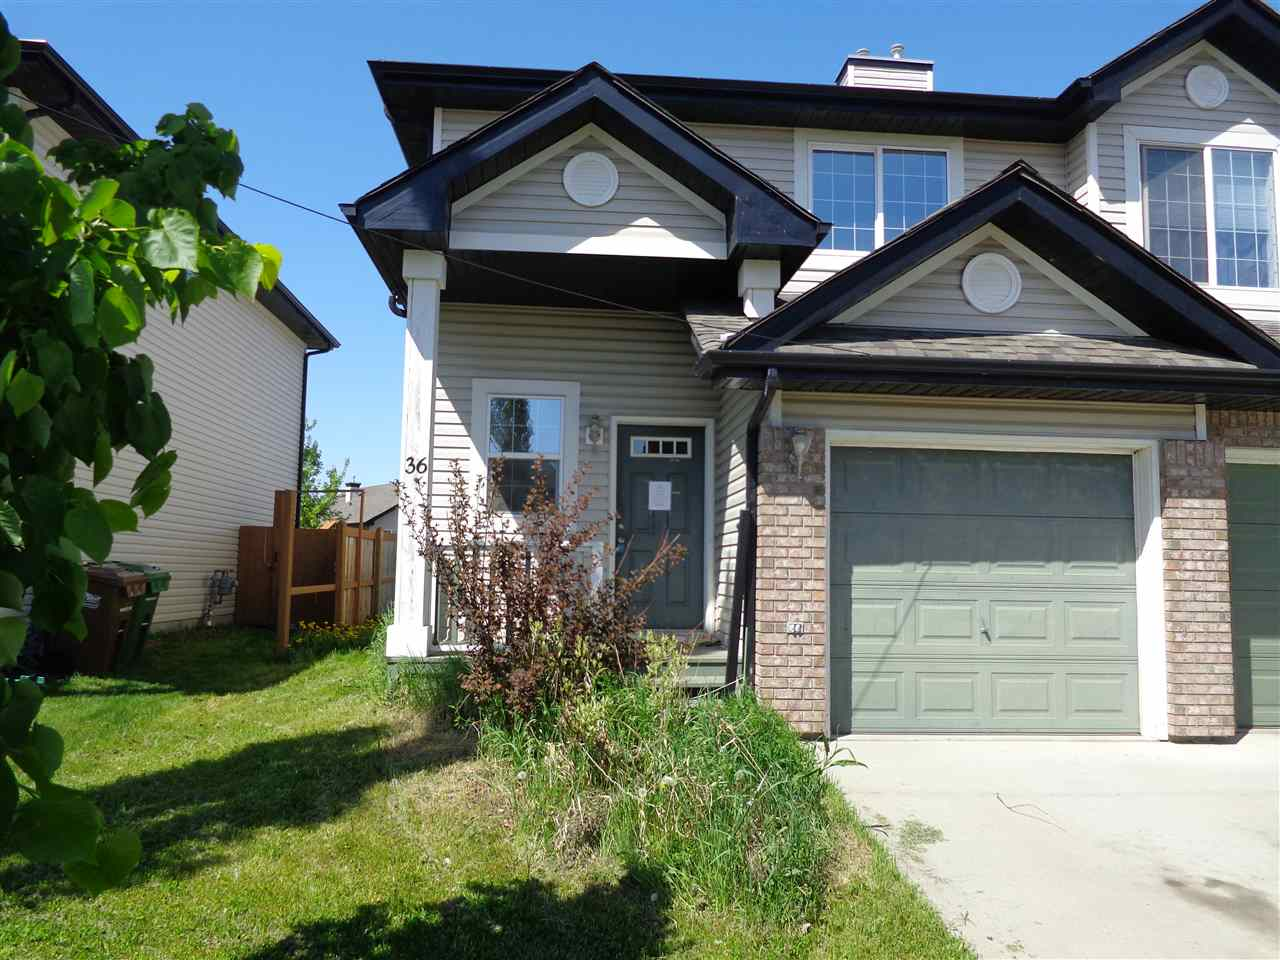 Main Photo: 36 NEVIS CL: St. Albert House Half Duplex for sale : MLS(r) # E4066497